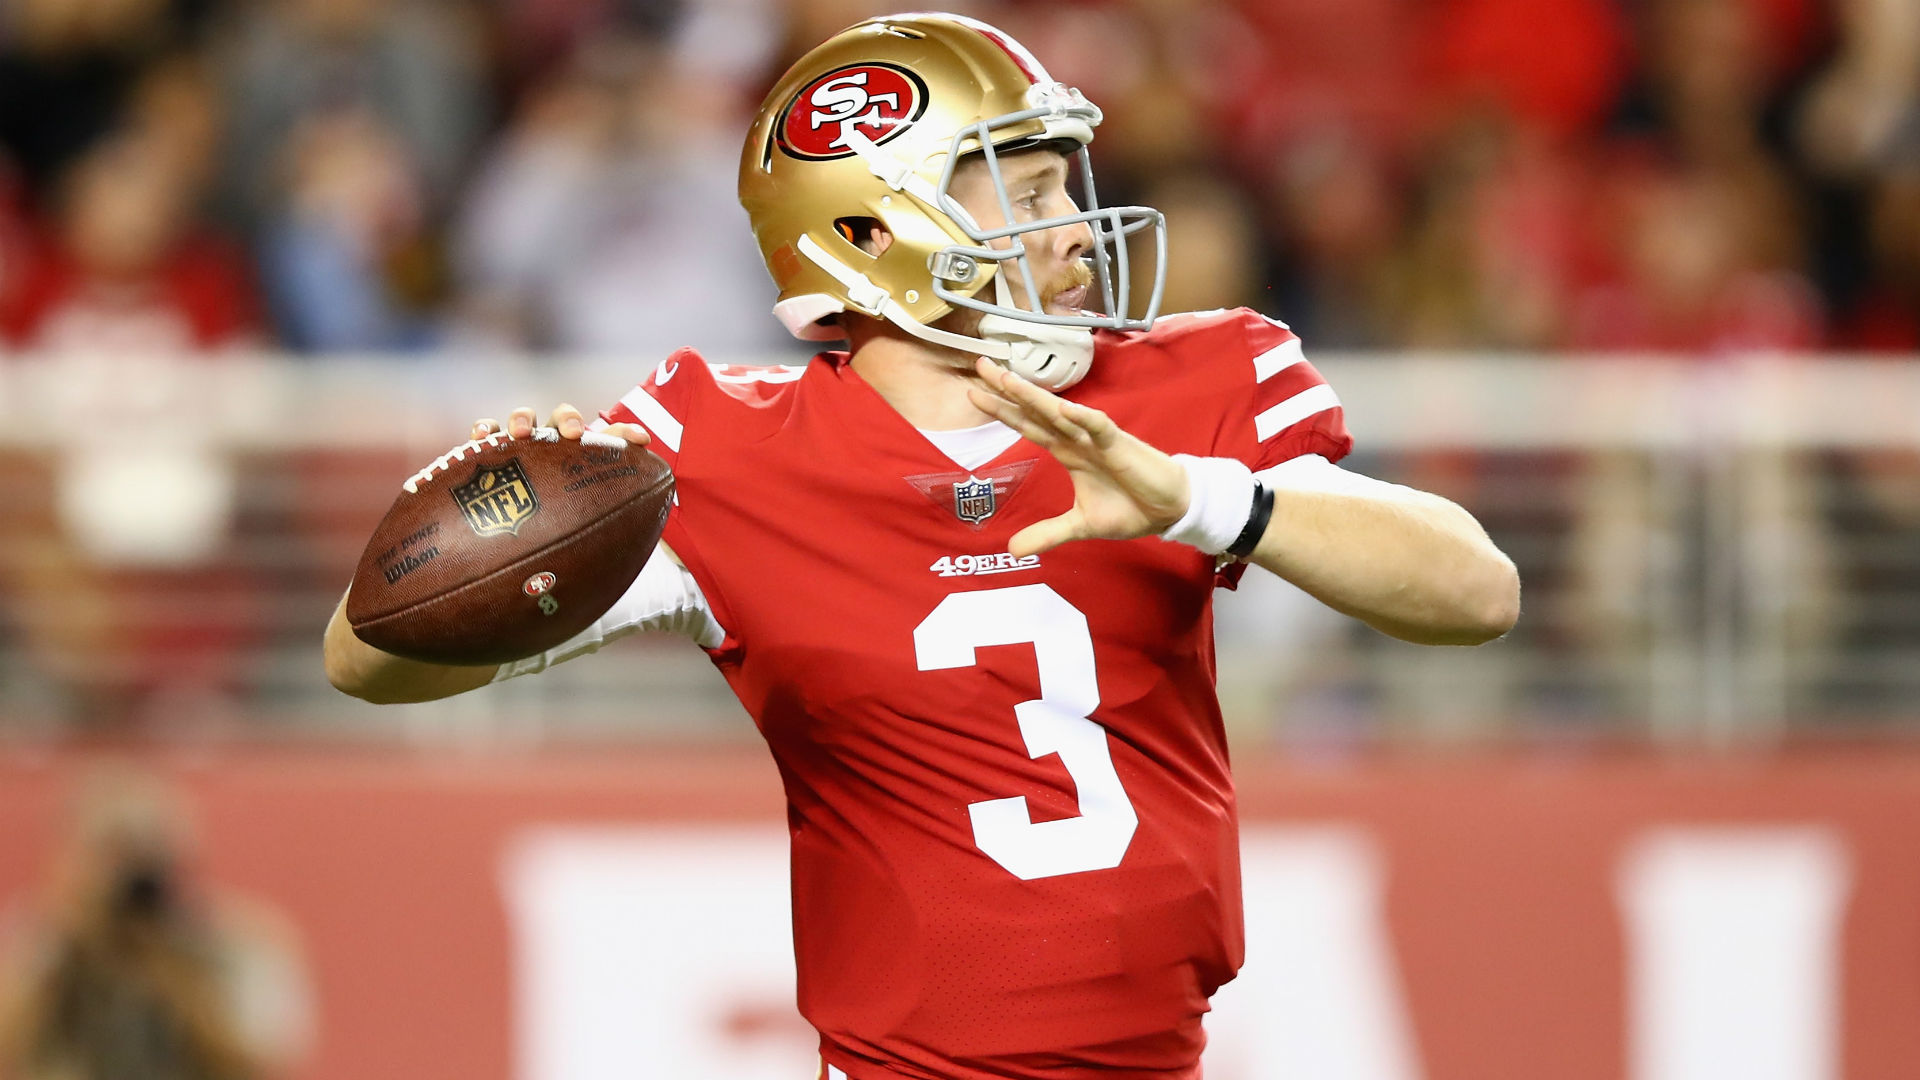 Nick Mullens gets verified on Twitter during breakout performance vs. Raiders